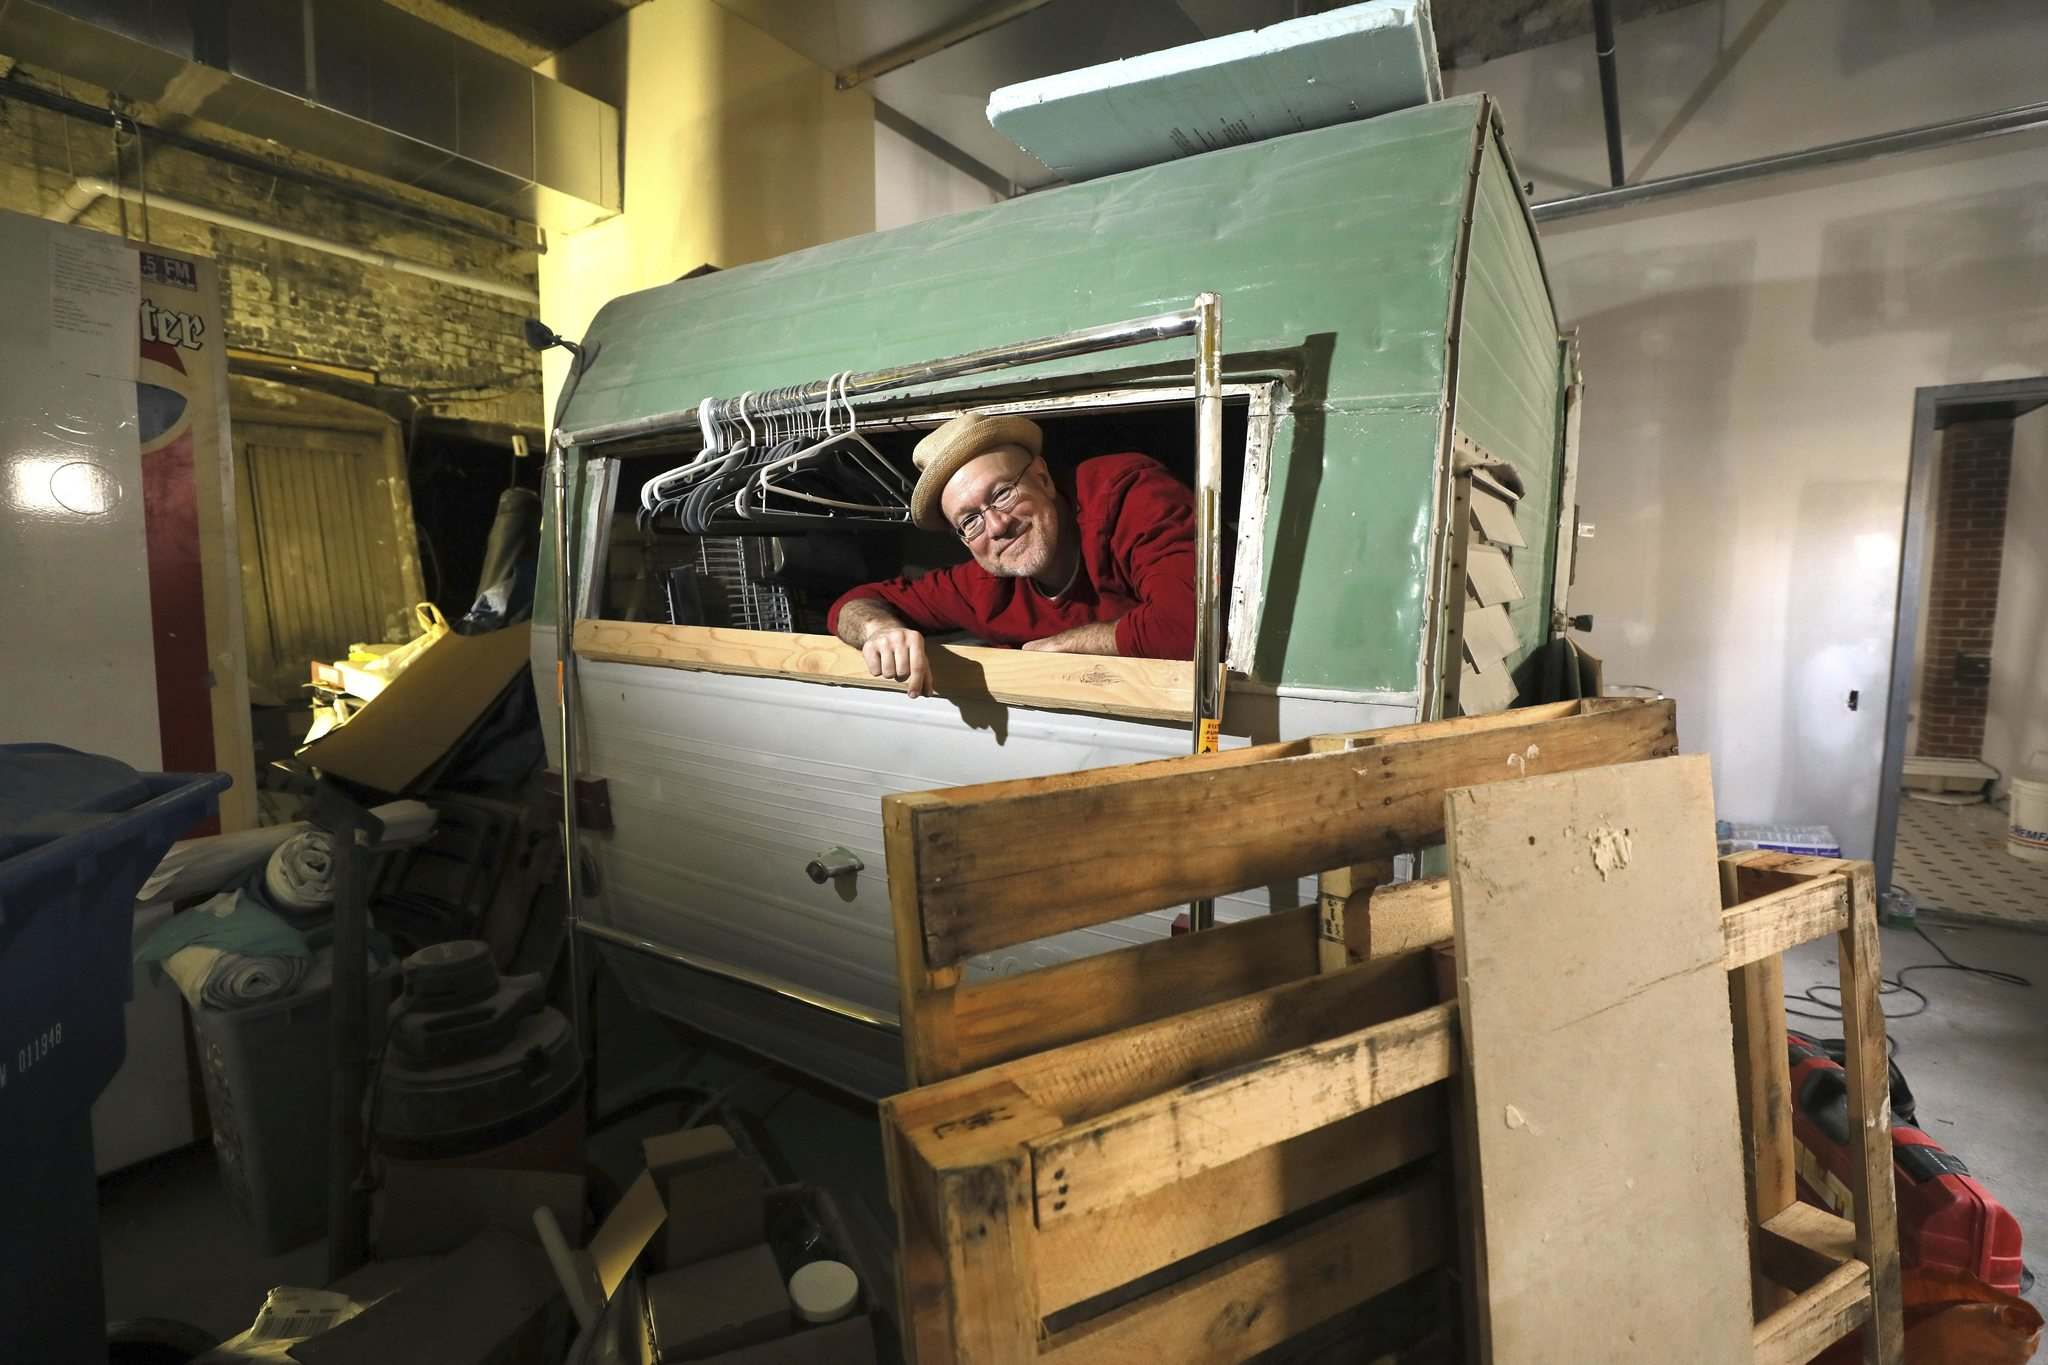 Scoles bought an old camper to use as some kind of serving station. (Ruth Bonneville / Winnipeg Free Press)